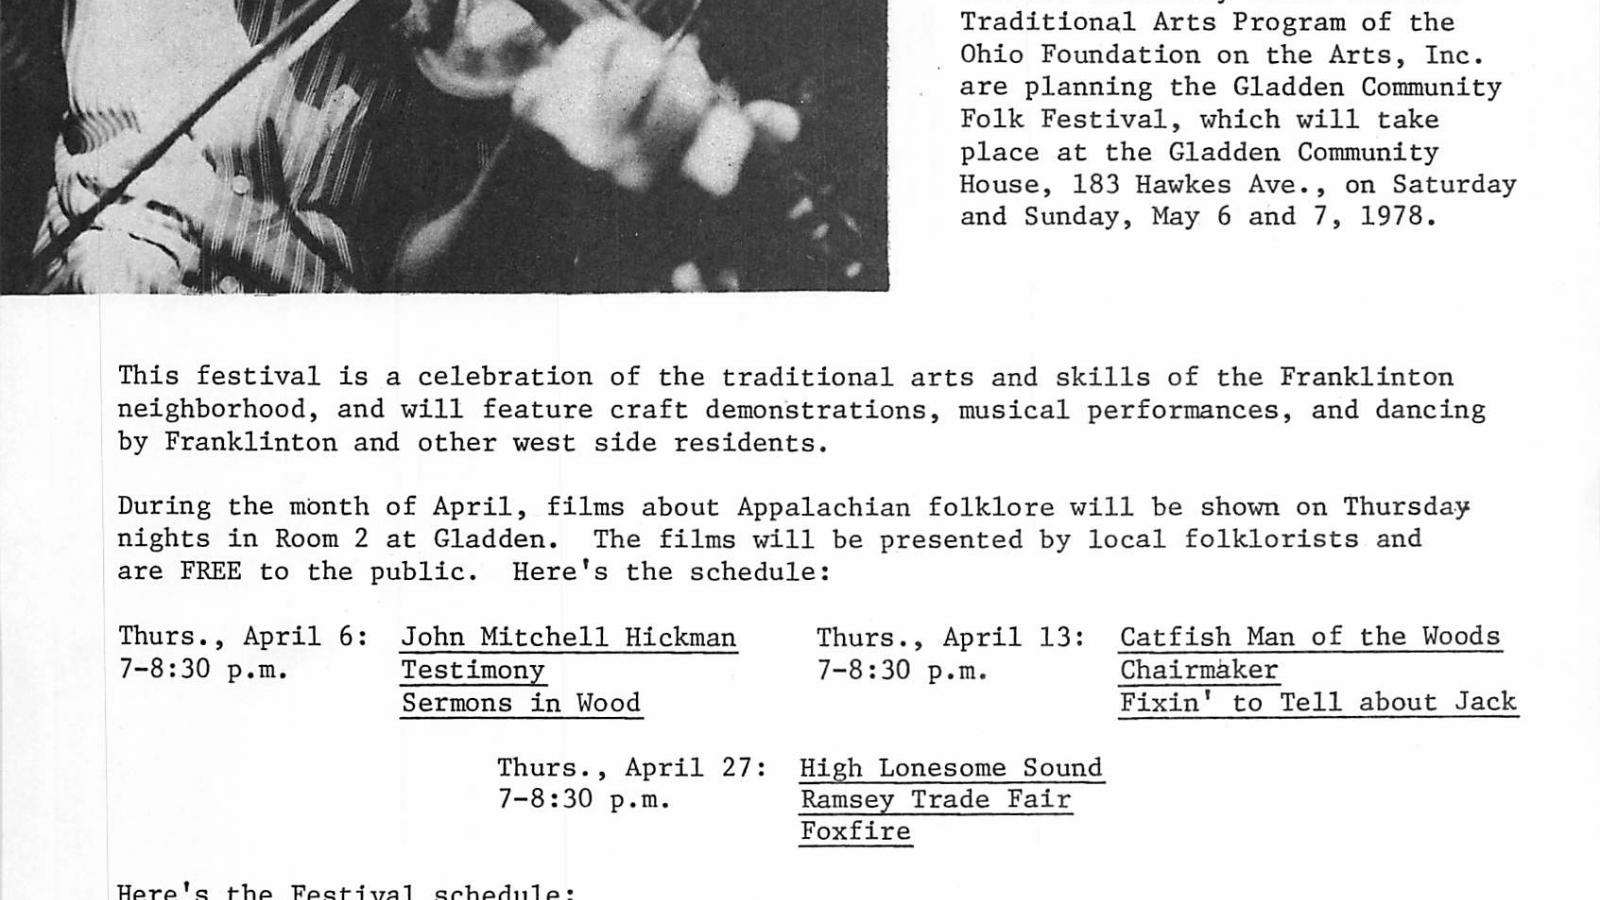 Flyer for Gladden Community Folk Festival in Columbus, May 5-6, 1978